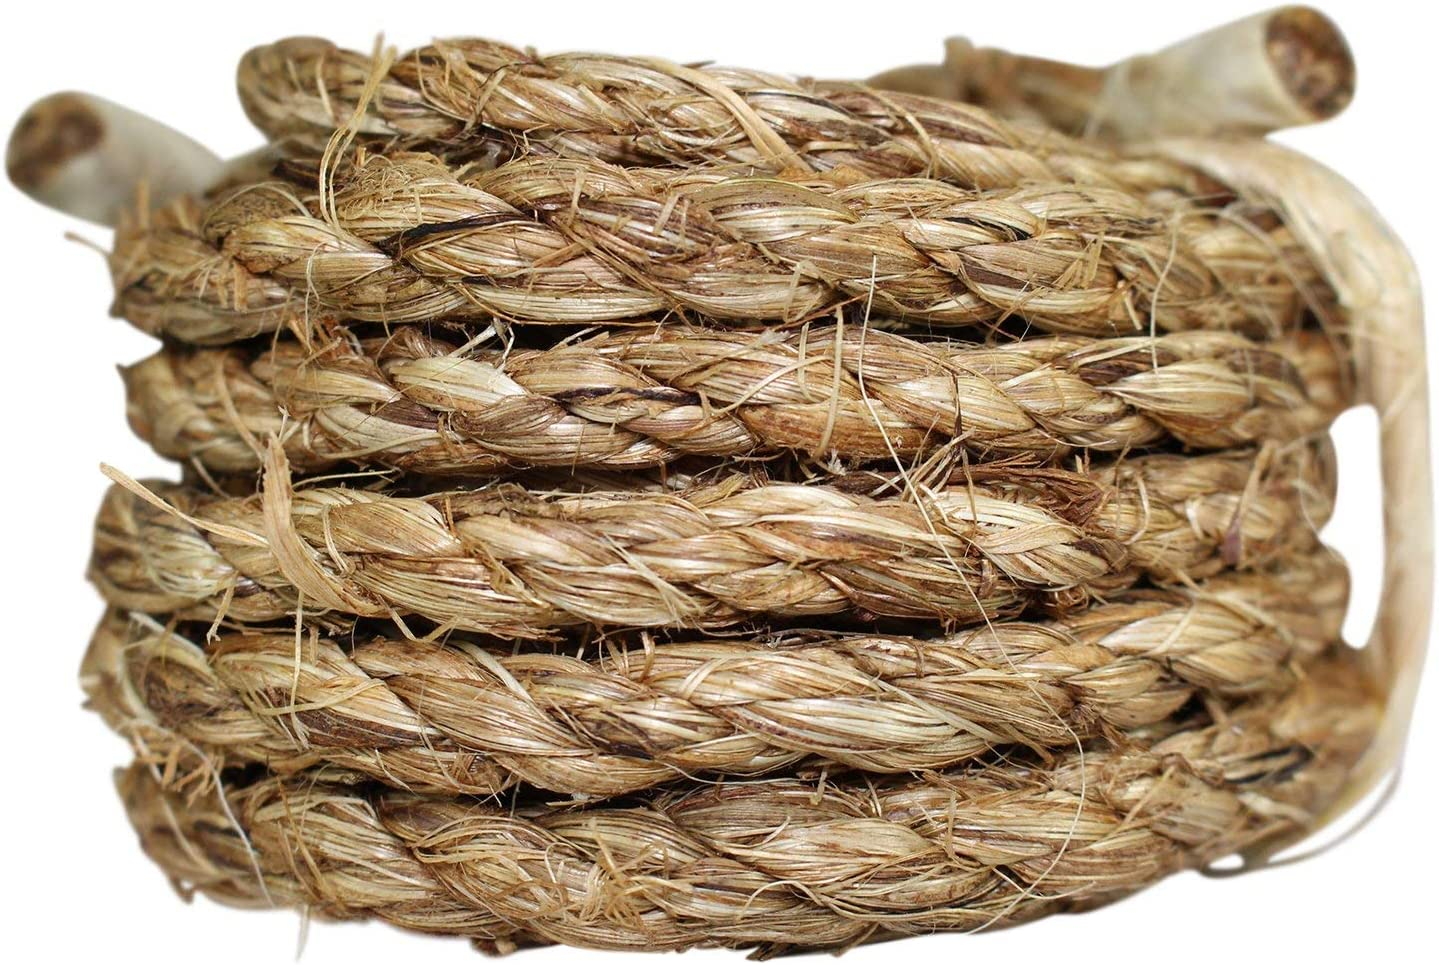 Twisted Manila 3 Strand Natural Fiber Cord Length 10-1200 ft SGT KNOTS Manila Rope 1.25 inch x 10 feet Ropes for Indoor and Outdoor Use Tan Rope//Brown Rope Size 1//4-3 inch